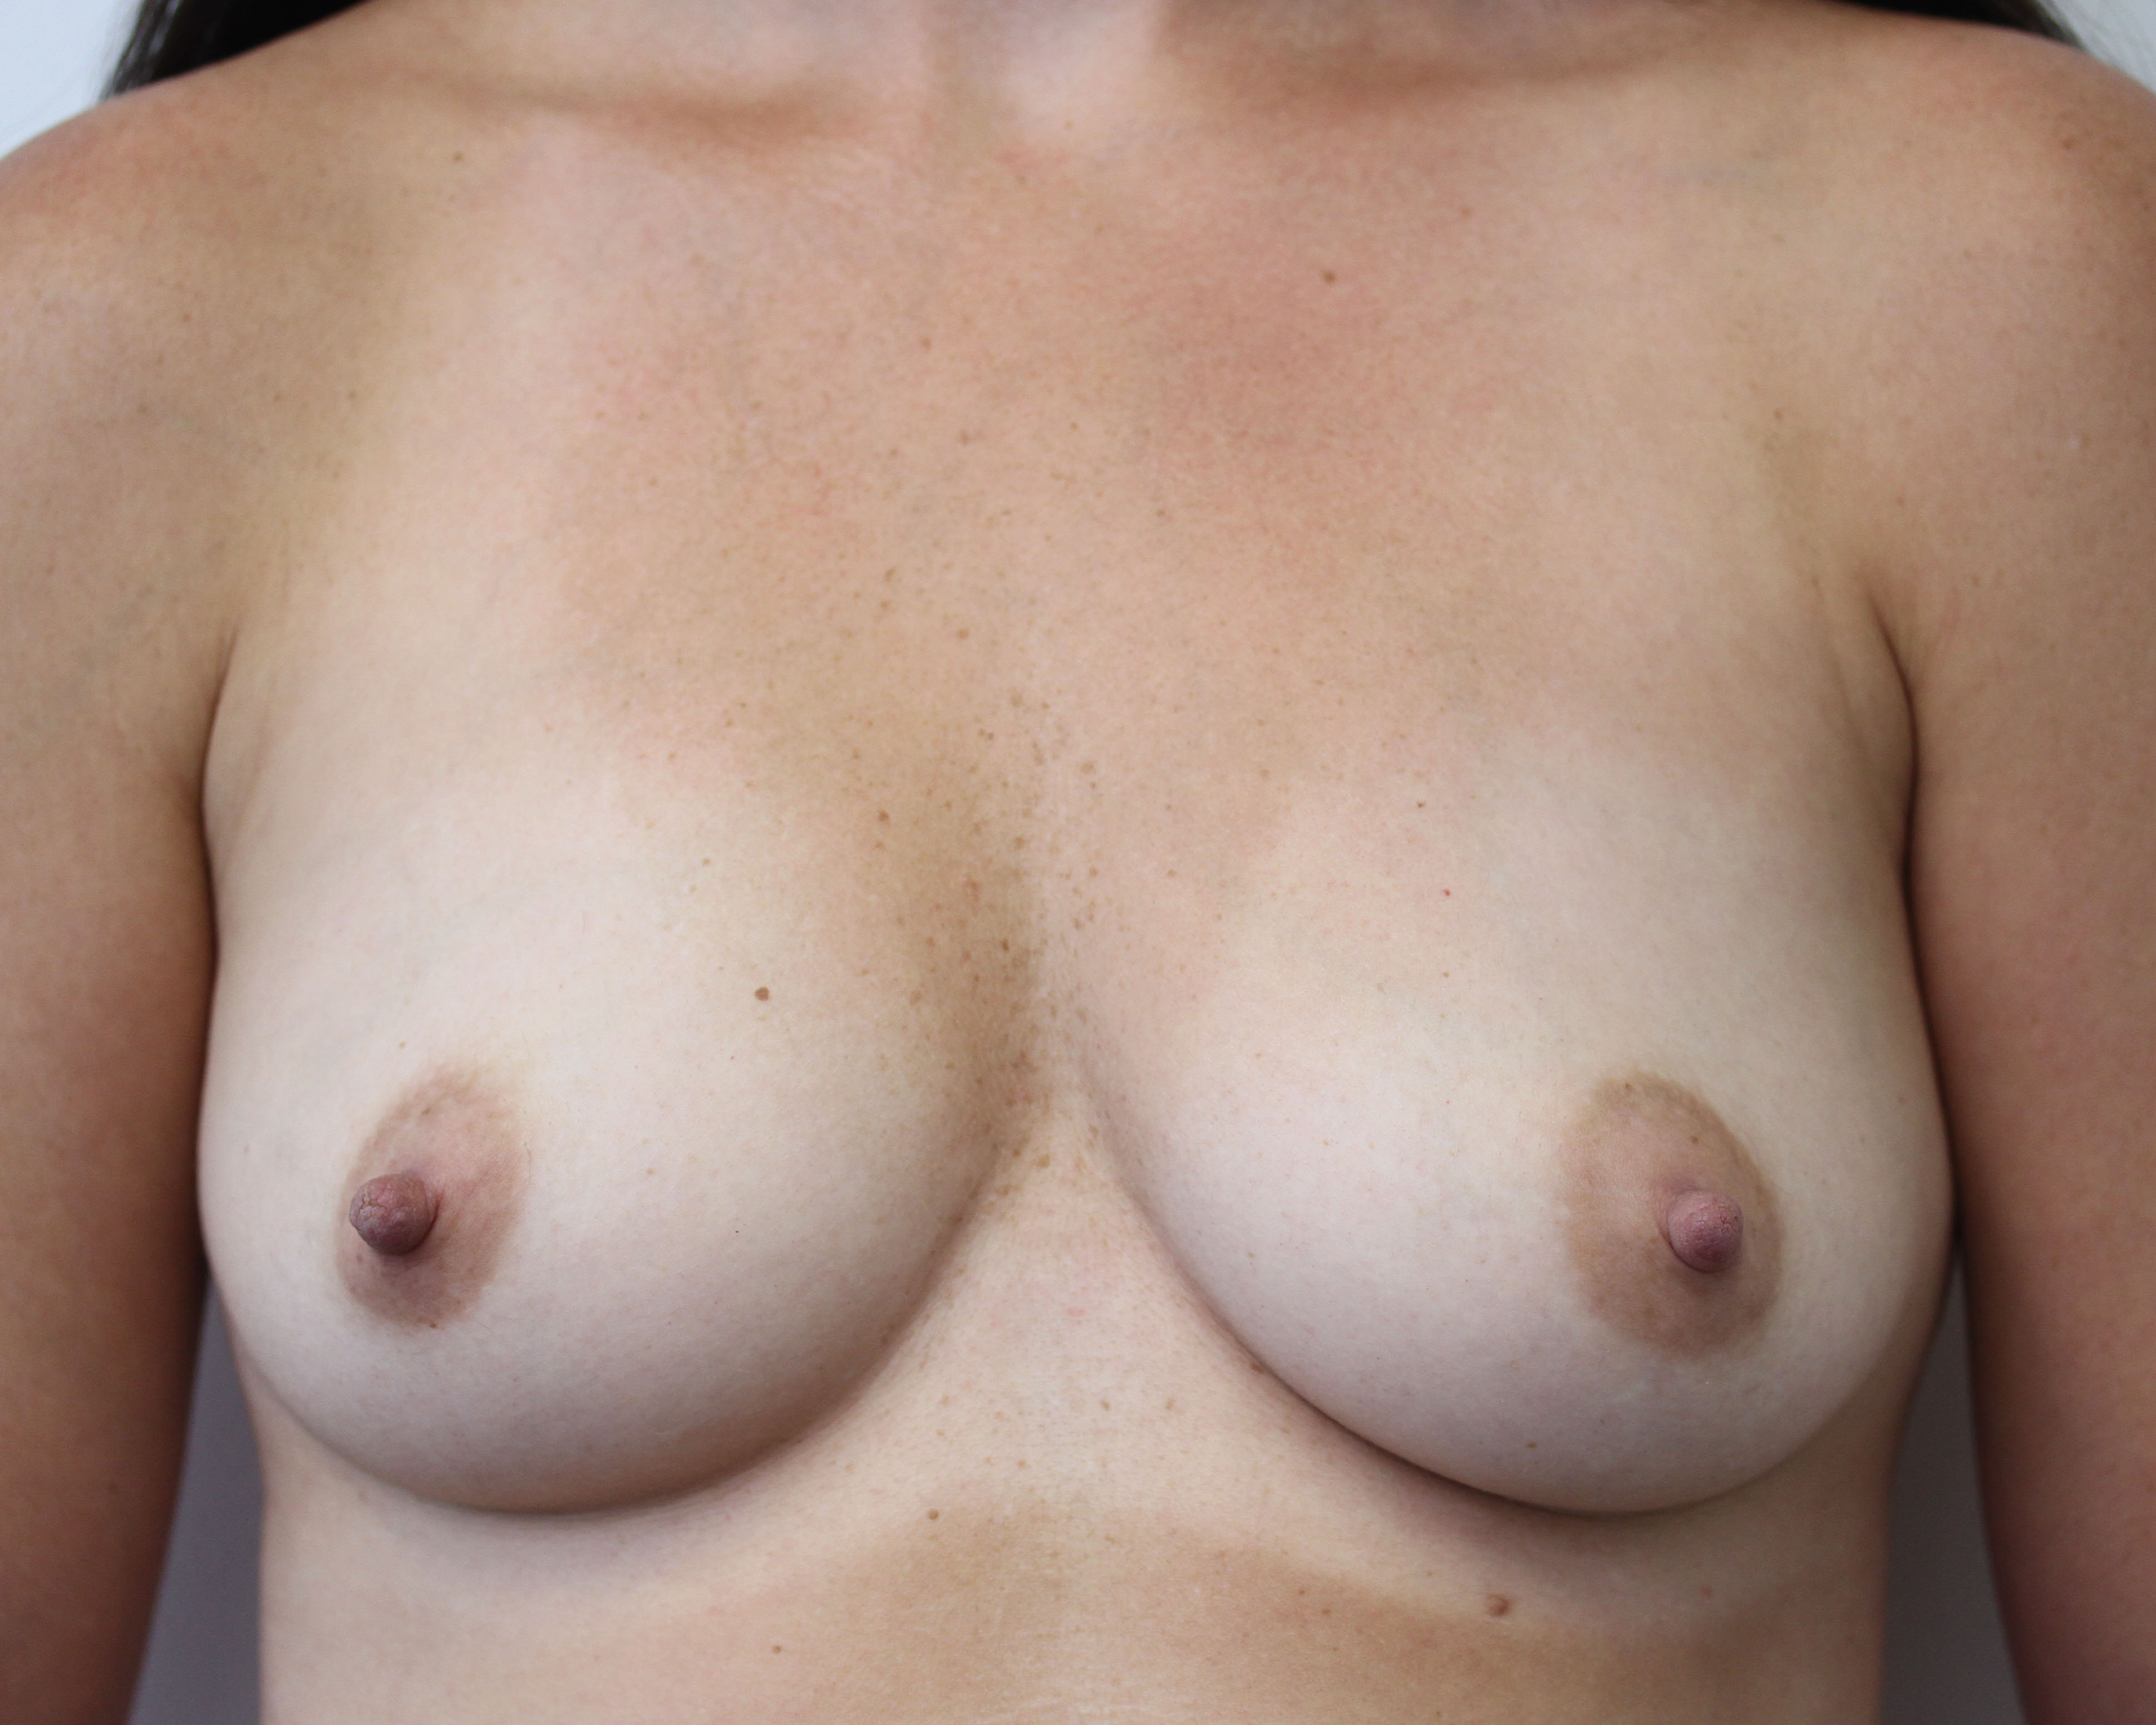 Ant preop 35 yr old woman with deflated B cup breasts after breastfeeding